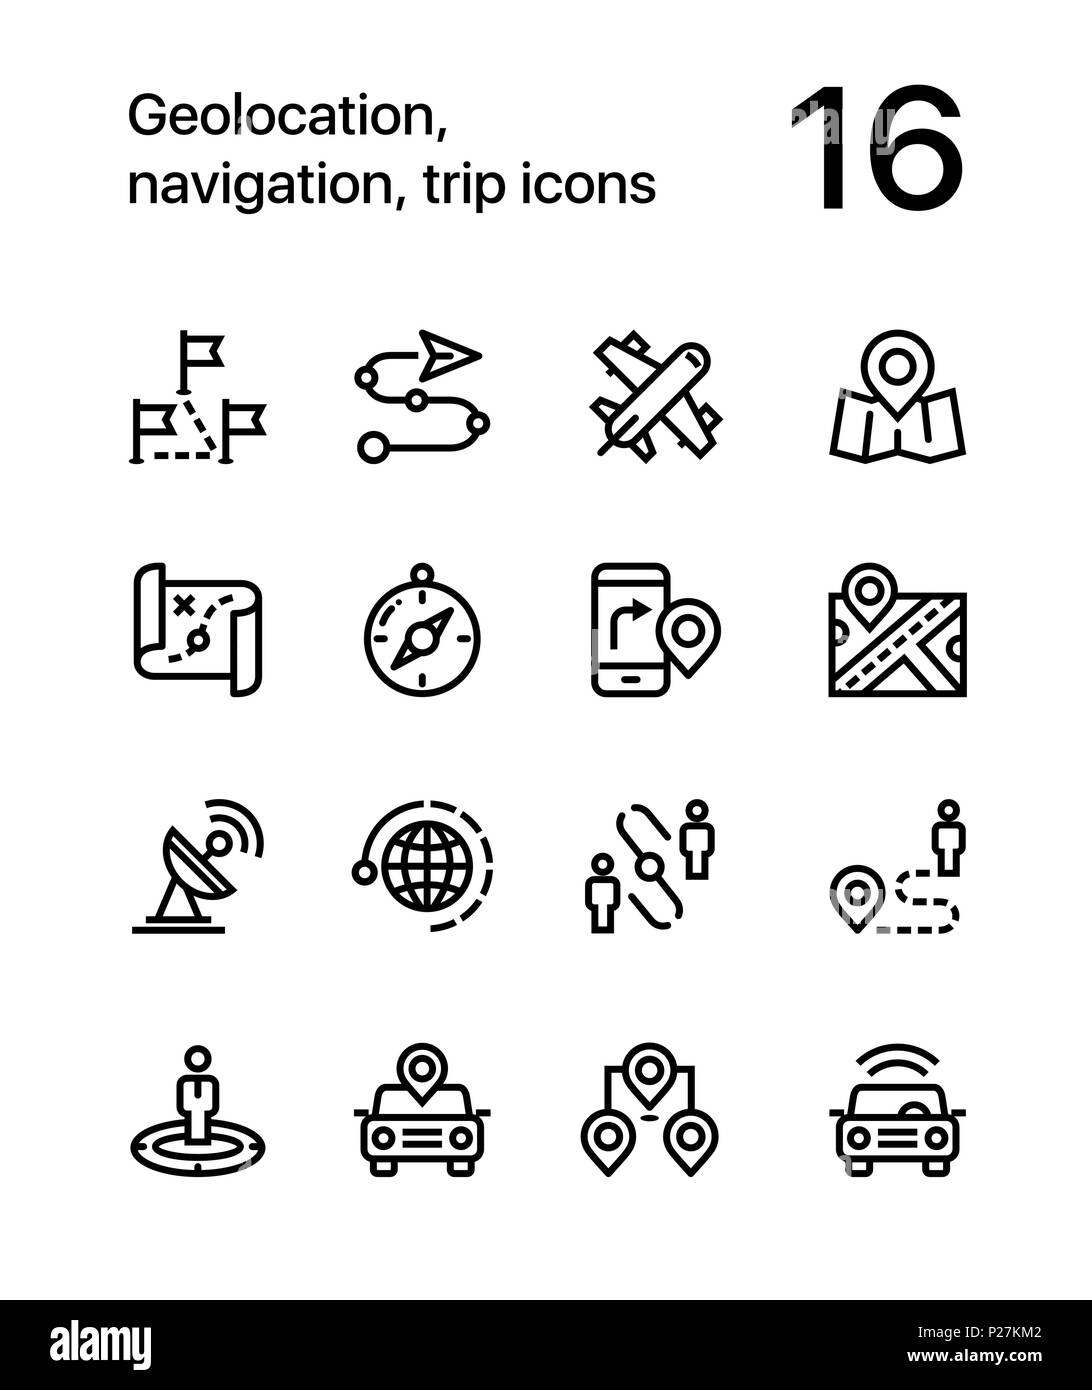 Geolocation, navigation, trip icons for web and mobile design pack 3 - Stock Image